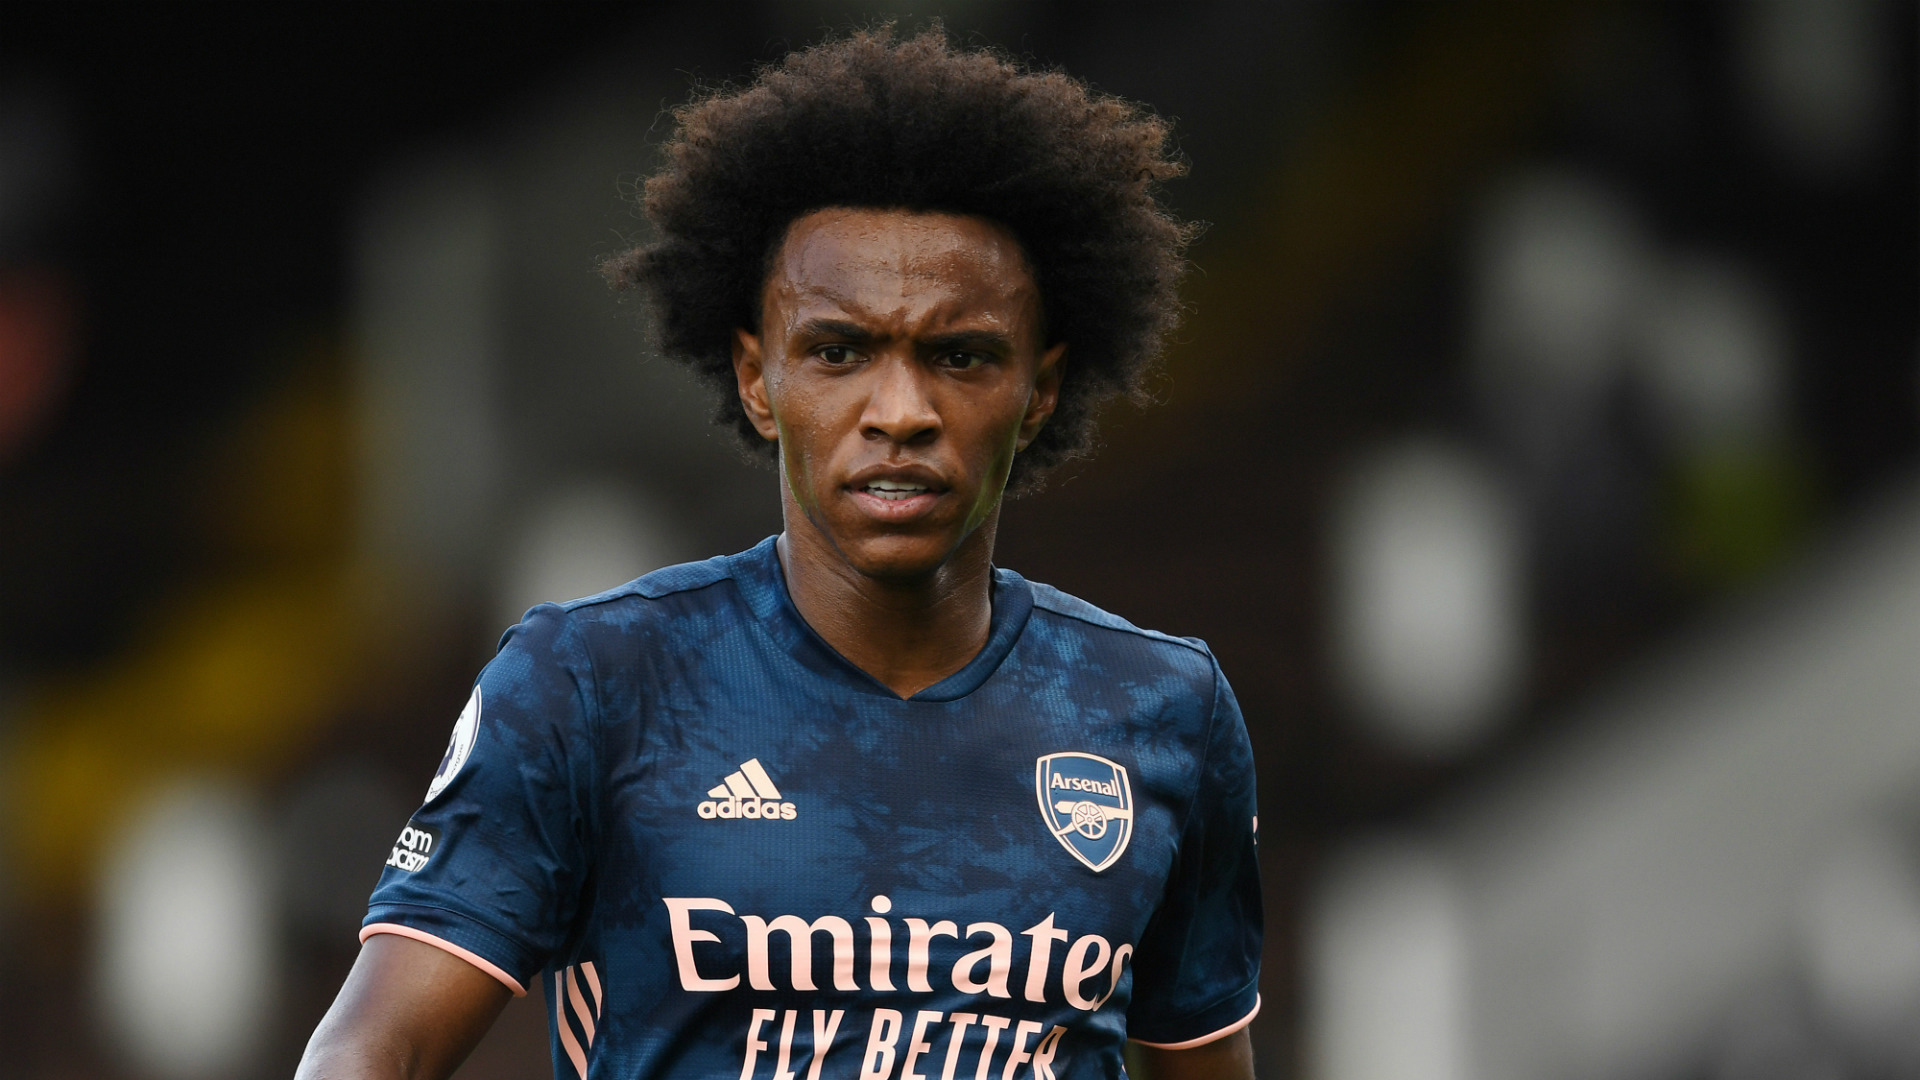 Merson stunned Chelsea allowed Willian to join Arsenal